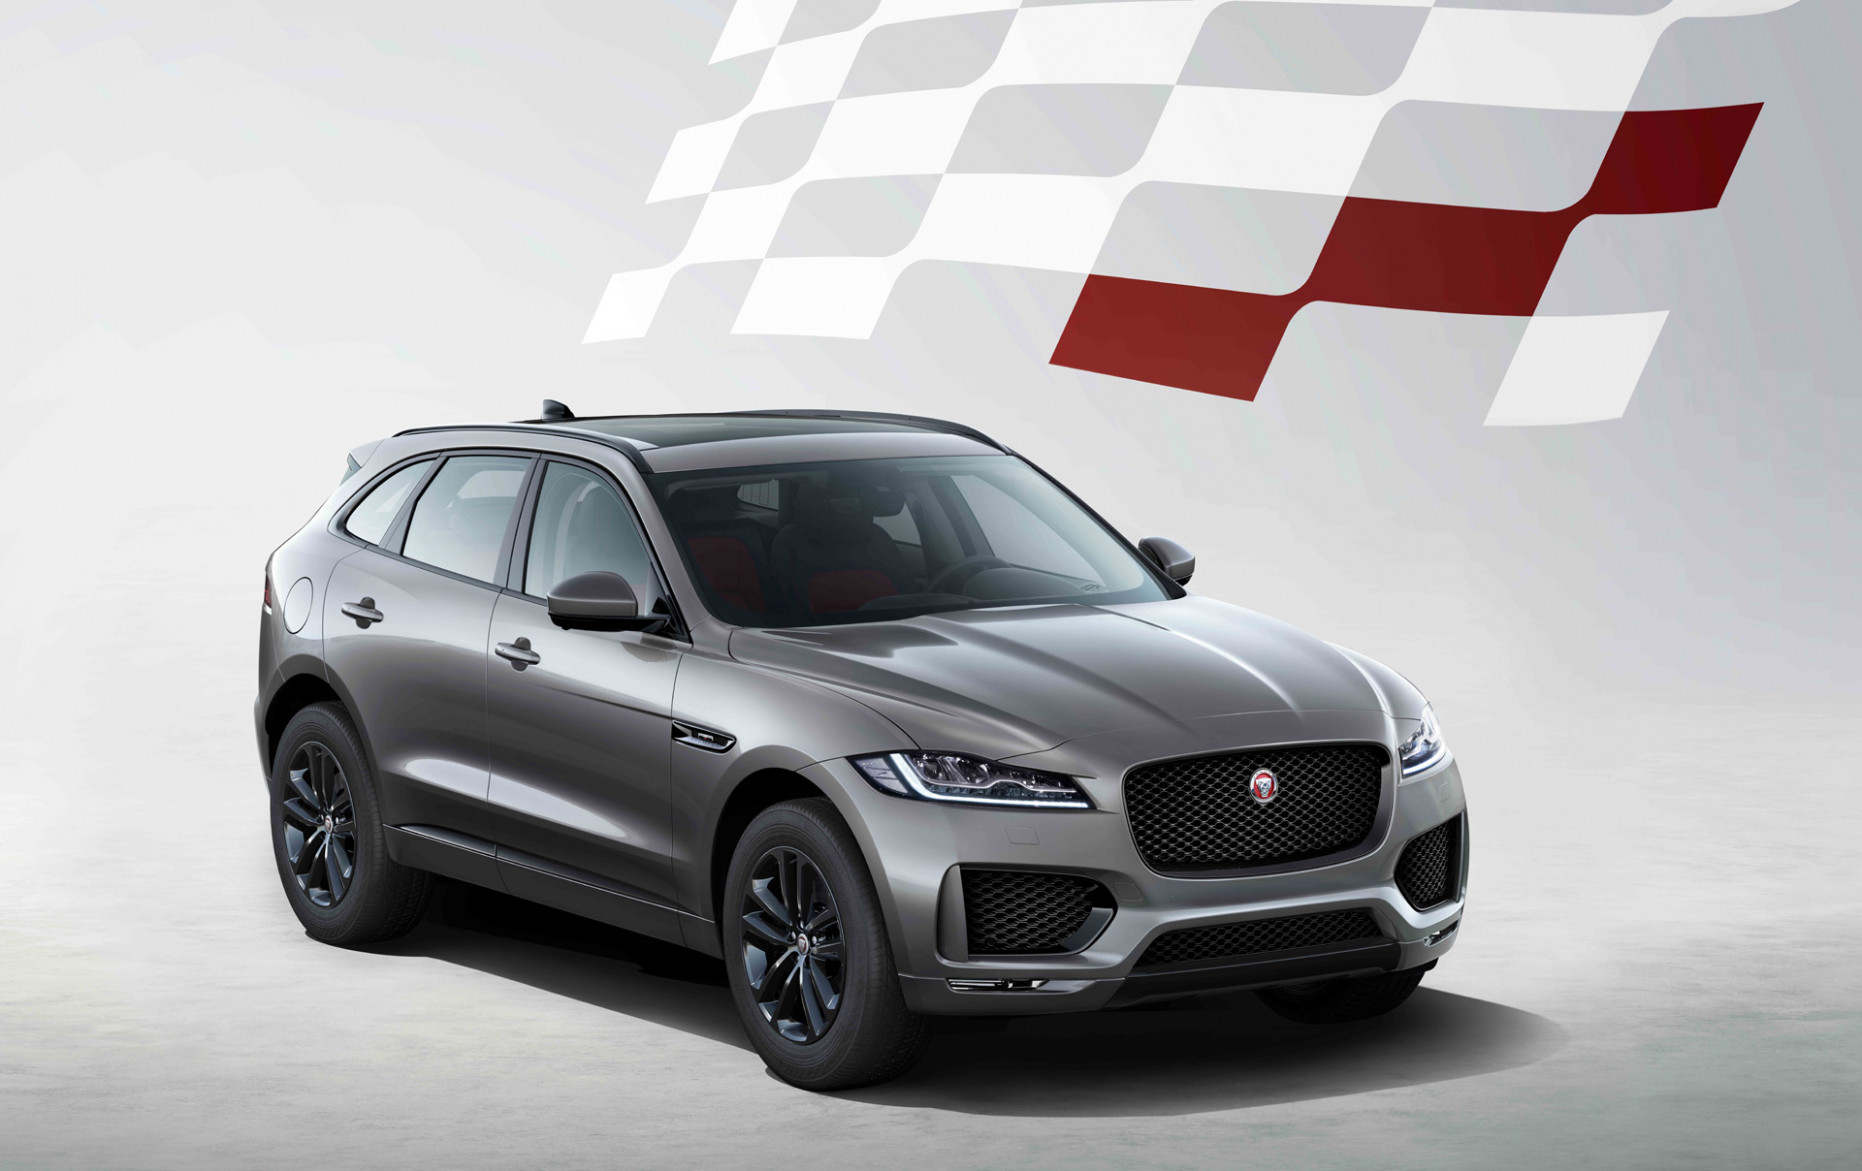 12 Jaguar F-Pace Review, Ratings, Specs, Prices, and Photos ..